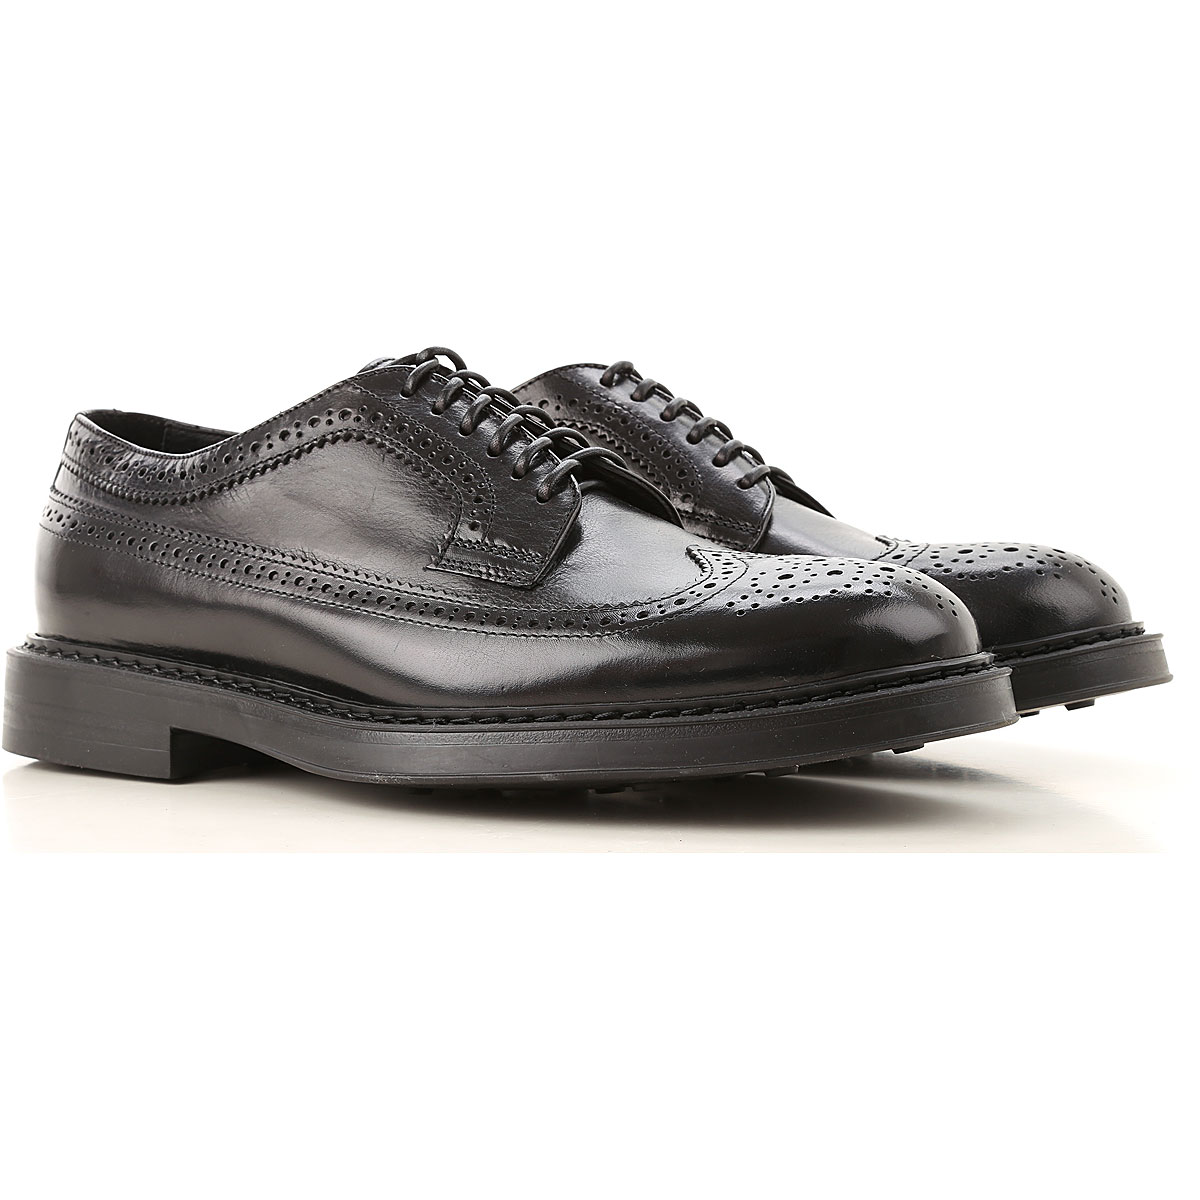 Doucals Lace Up Shoes for Men Oxfords, Derbies and Brogues, Black, Leather, 2019, 10.5 8 9